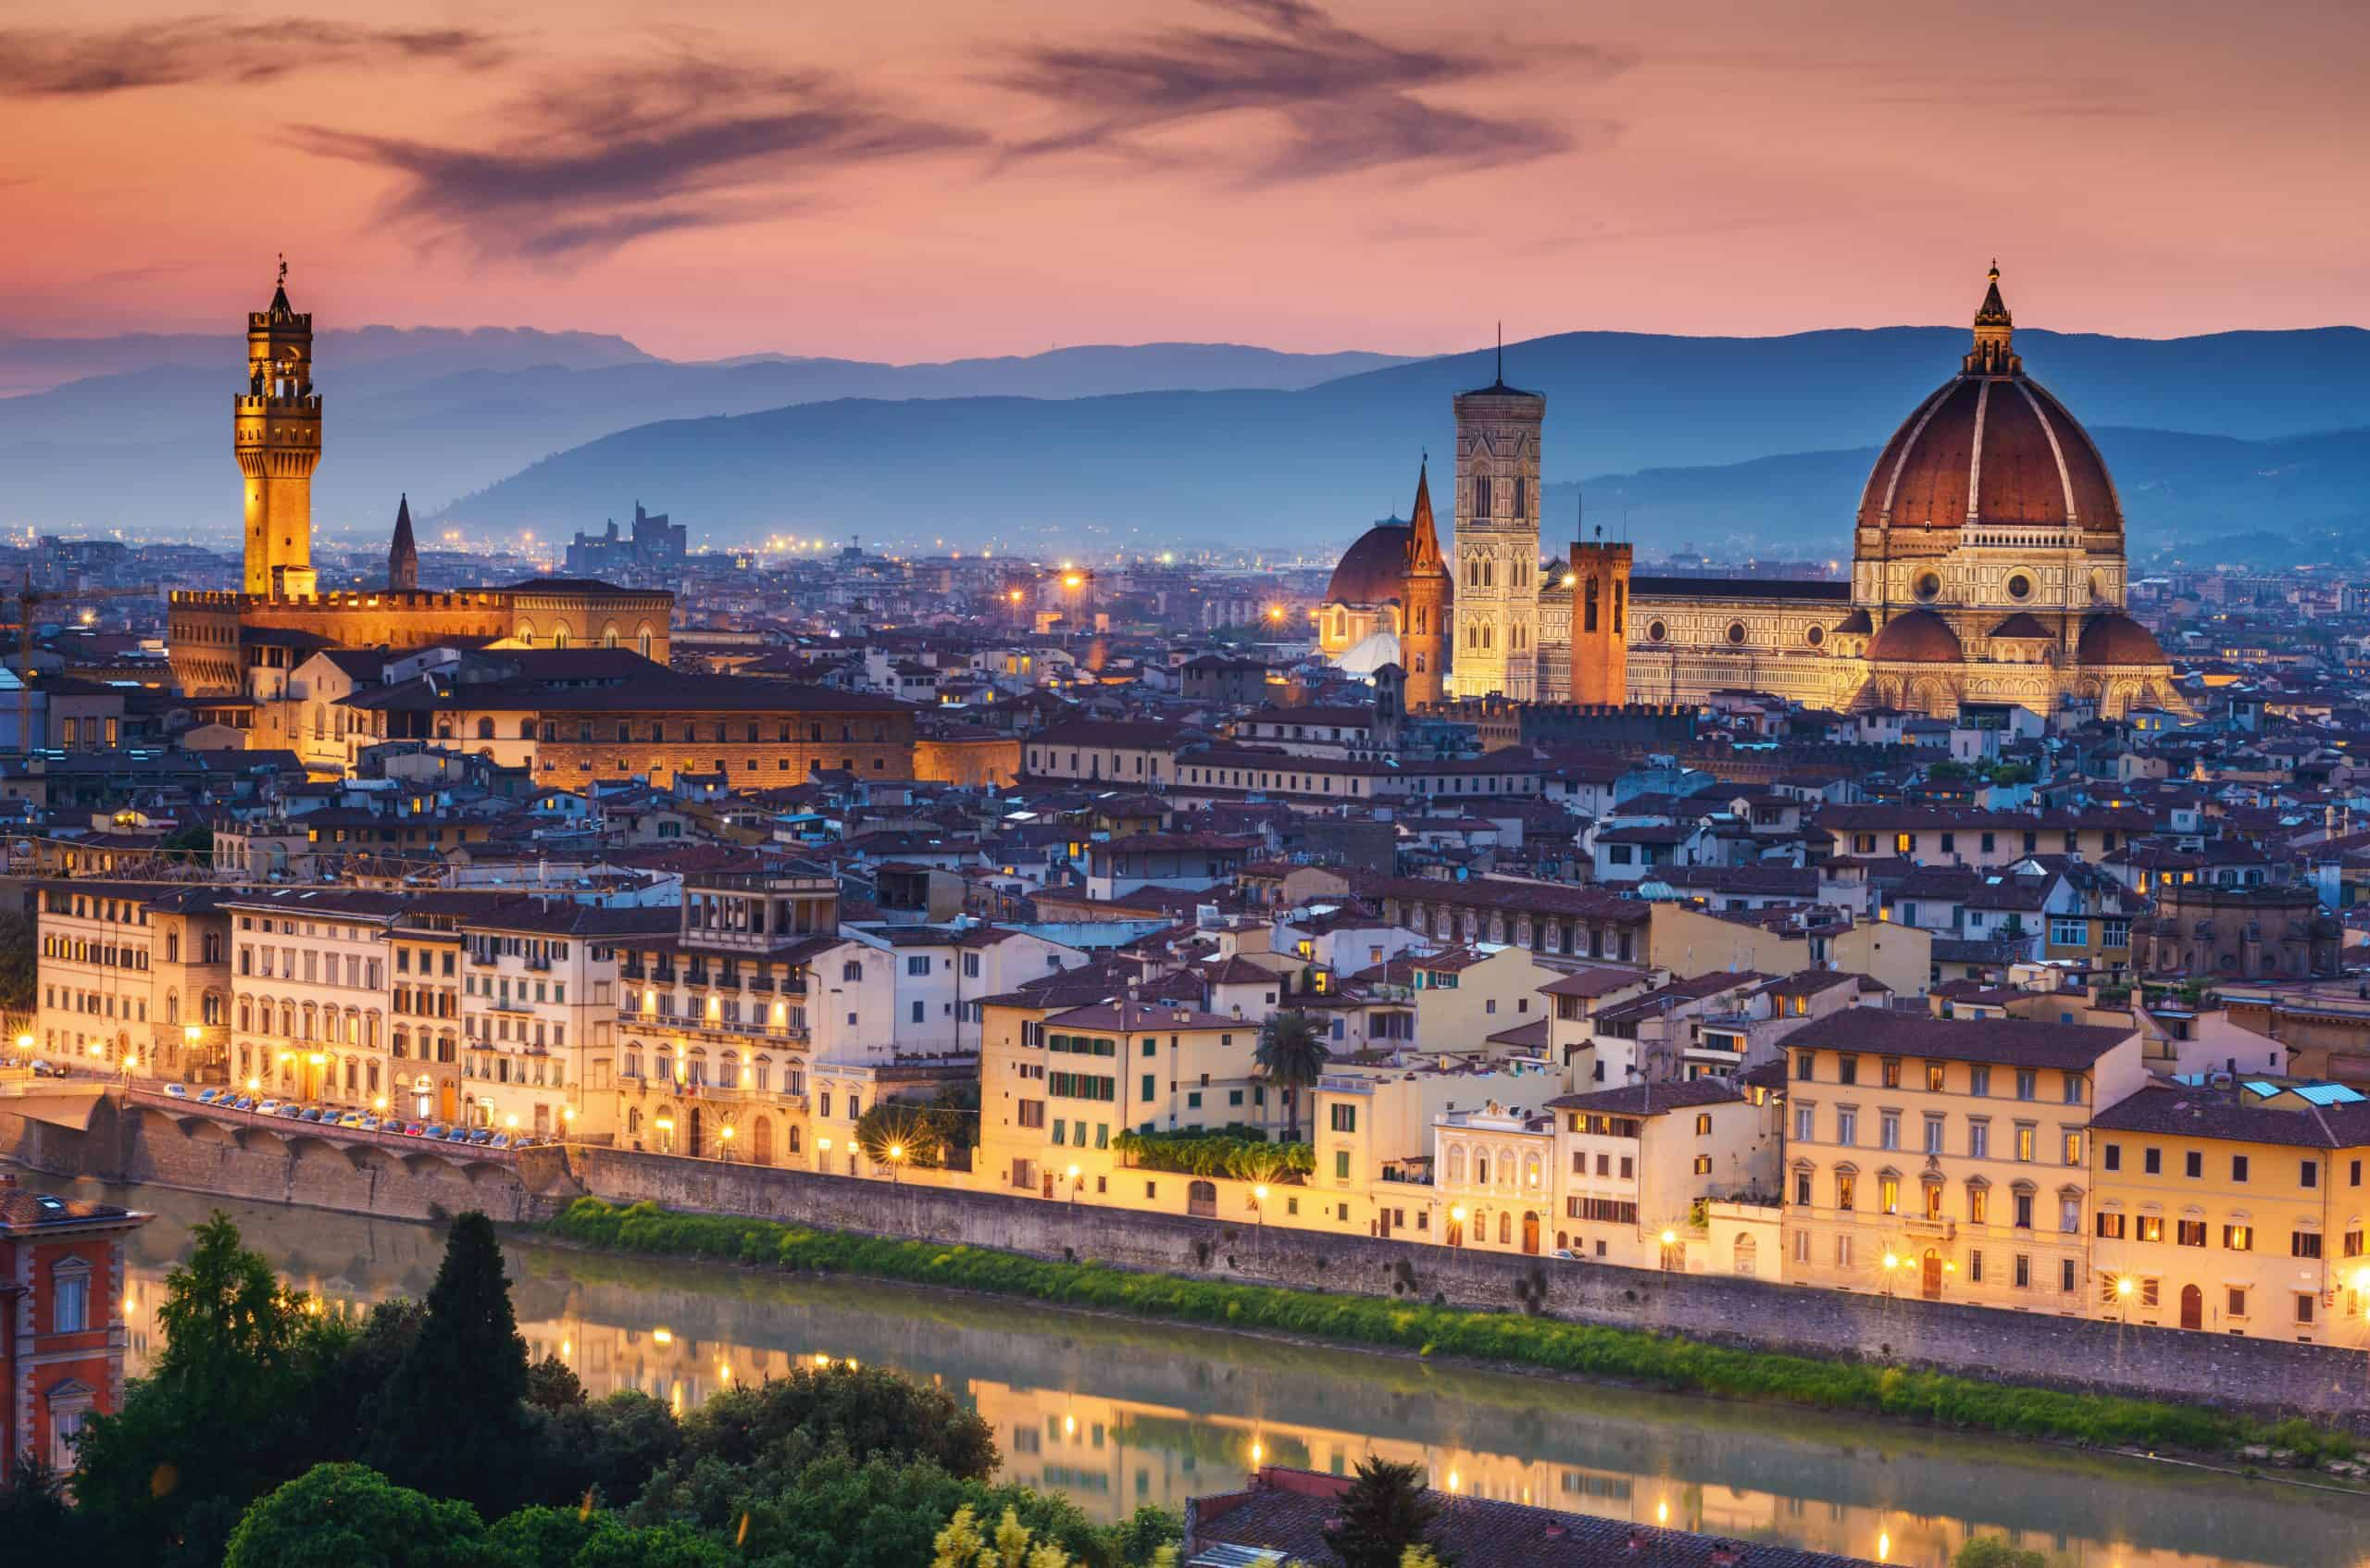 Sunset in Florence Italy in May, late spring, the best time to visit